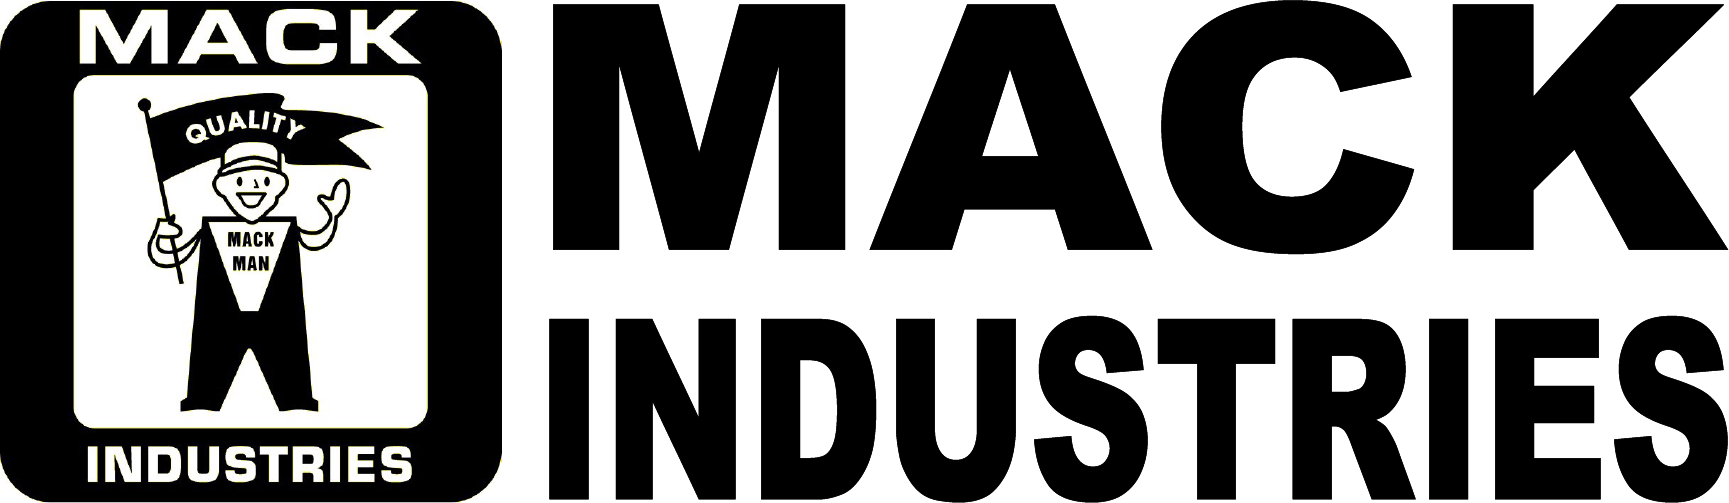 Mack Industries logo